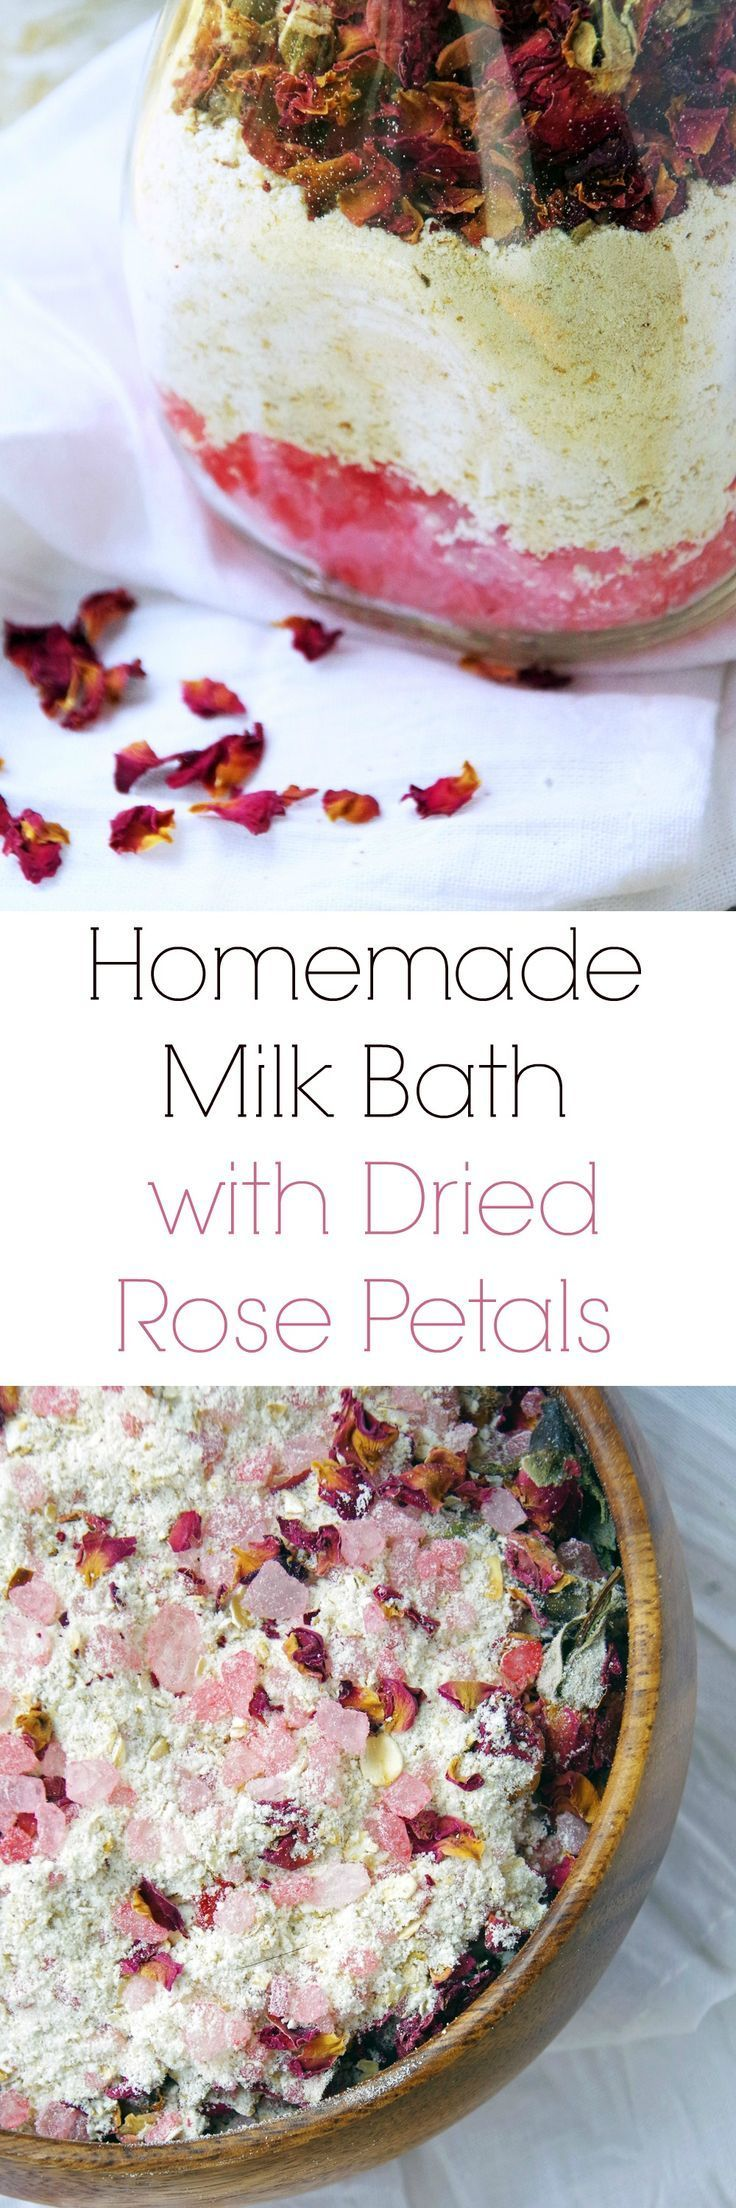 Homemade Milk Bath Recipe with Dried Red Rose Petals